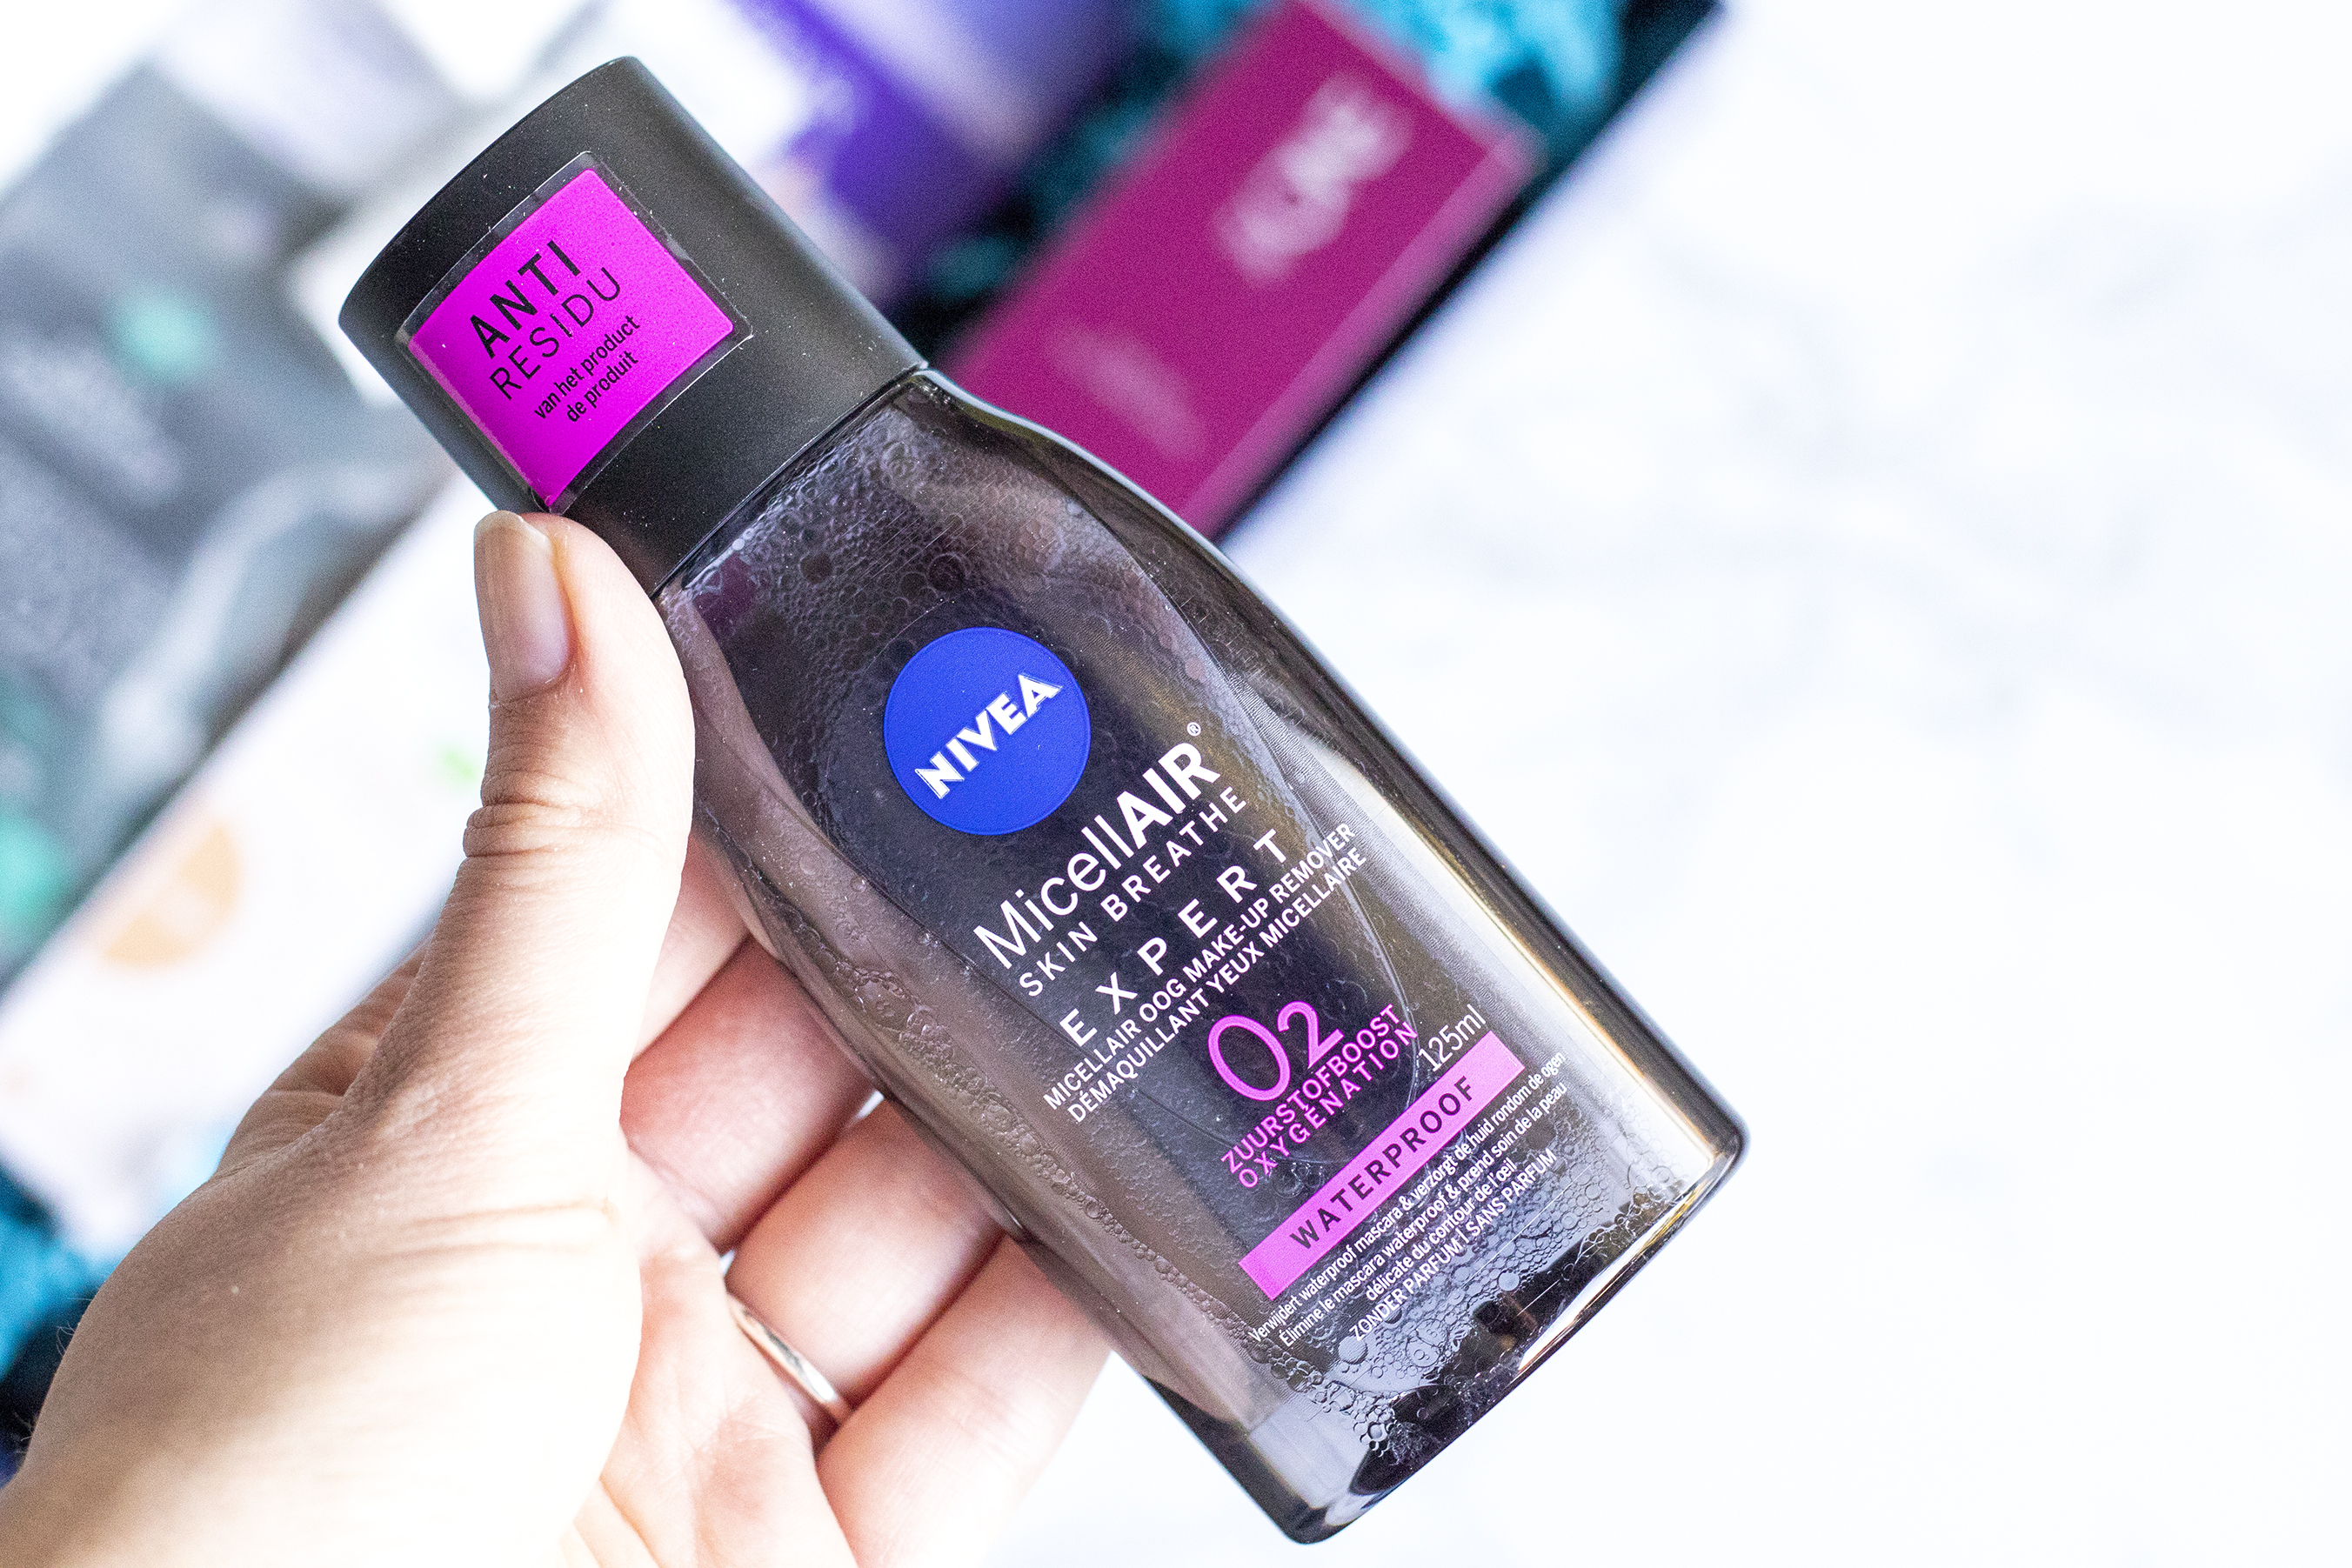 nivea micellair oog make-up remover, blux box unboxing